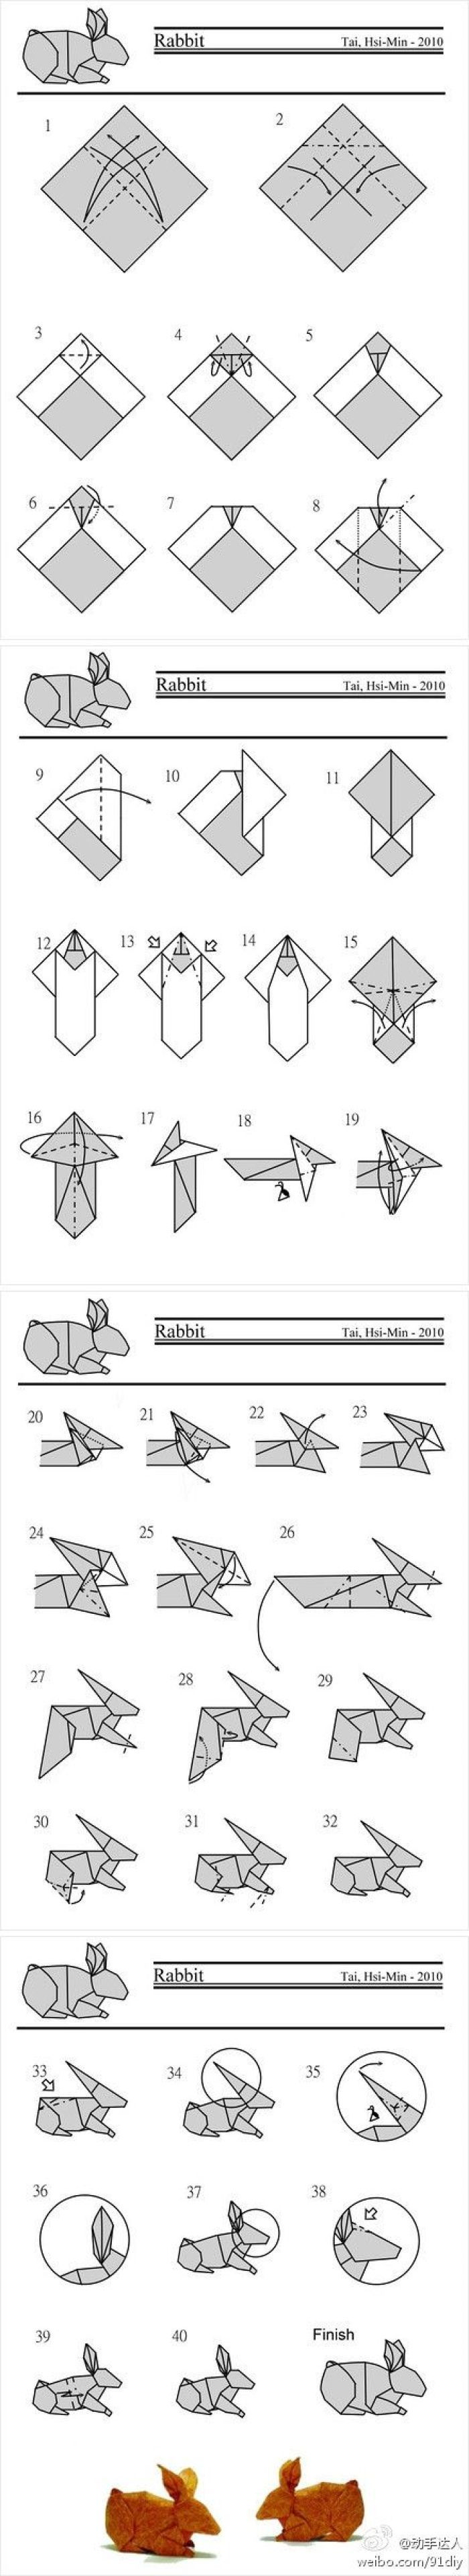 2258 Best Origami Images On Pinterest Animals Parrotdiagram By Barth Dunkan Ecorigami Find This Pin And More Donna Hardy